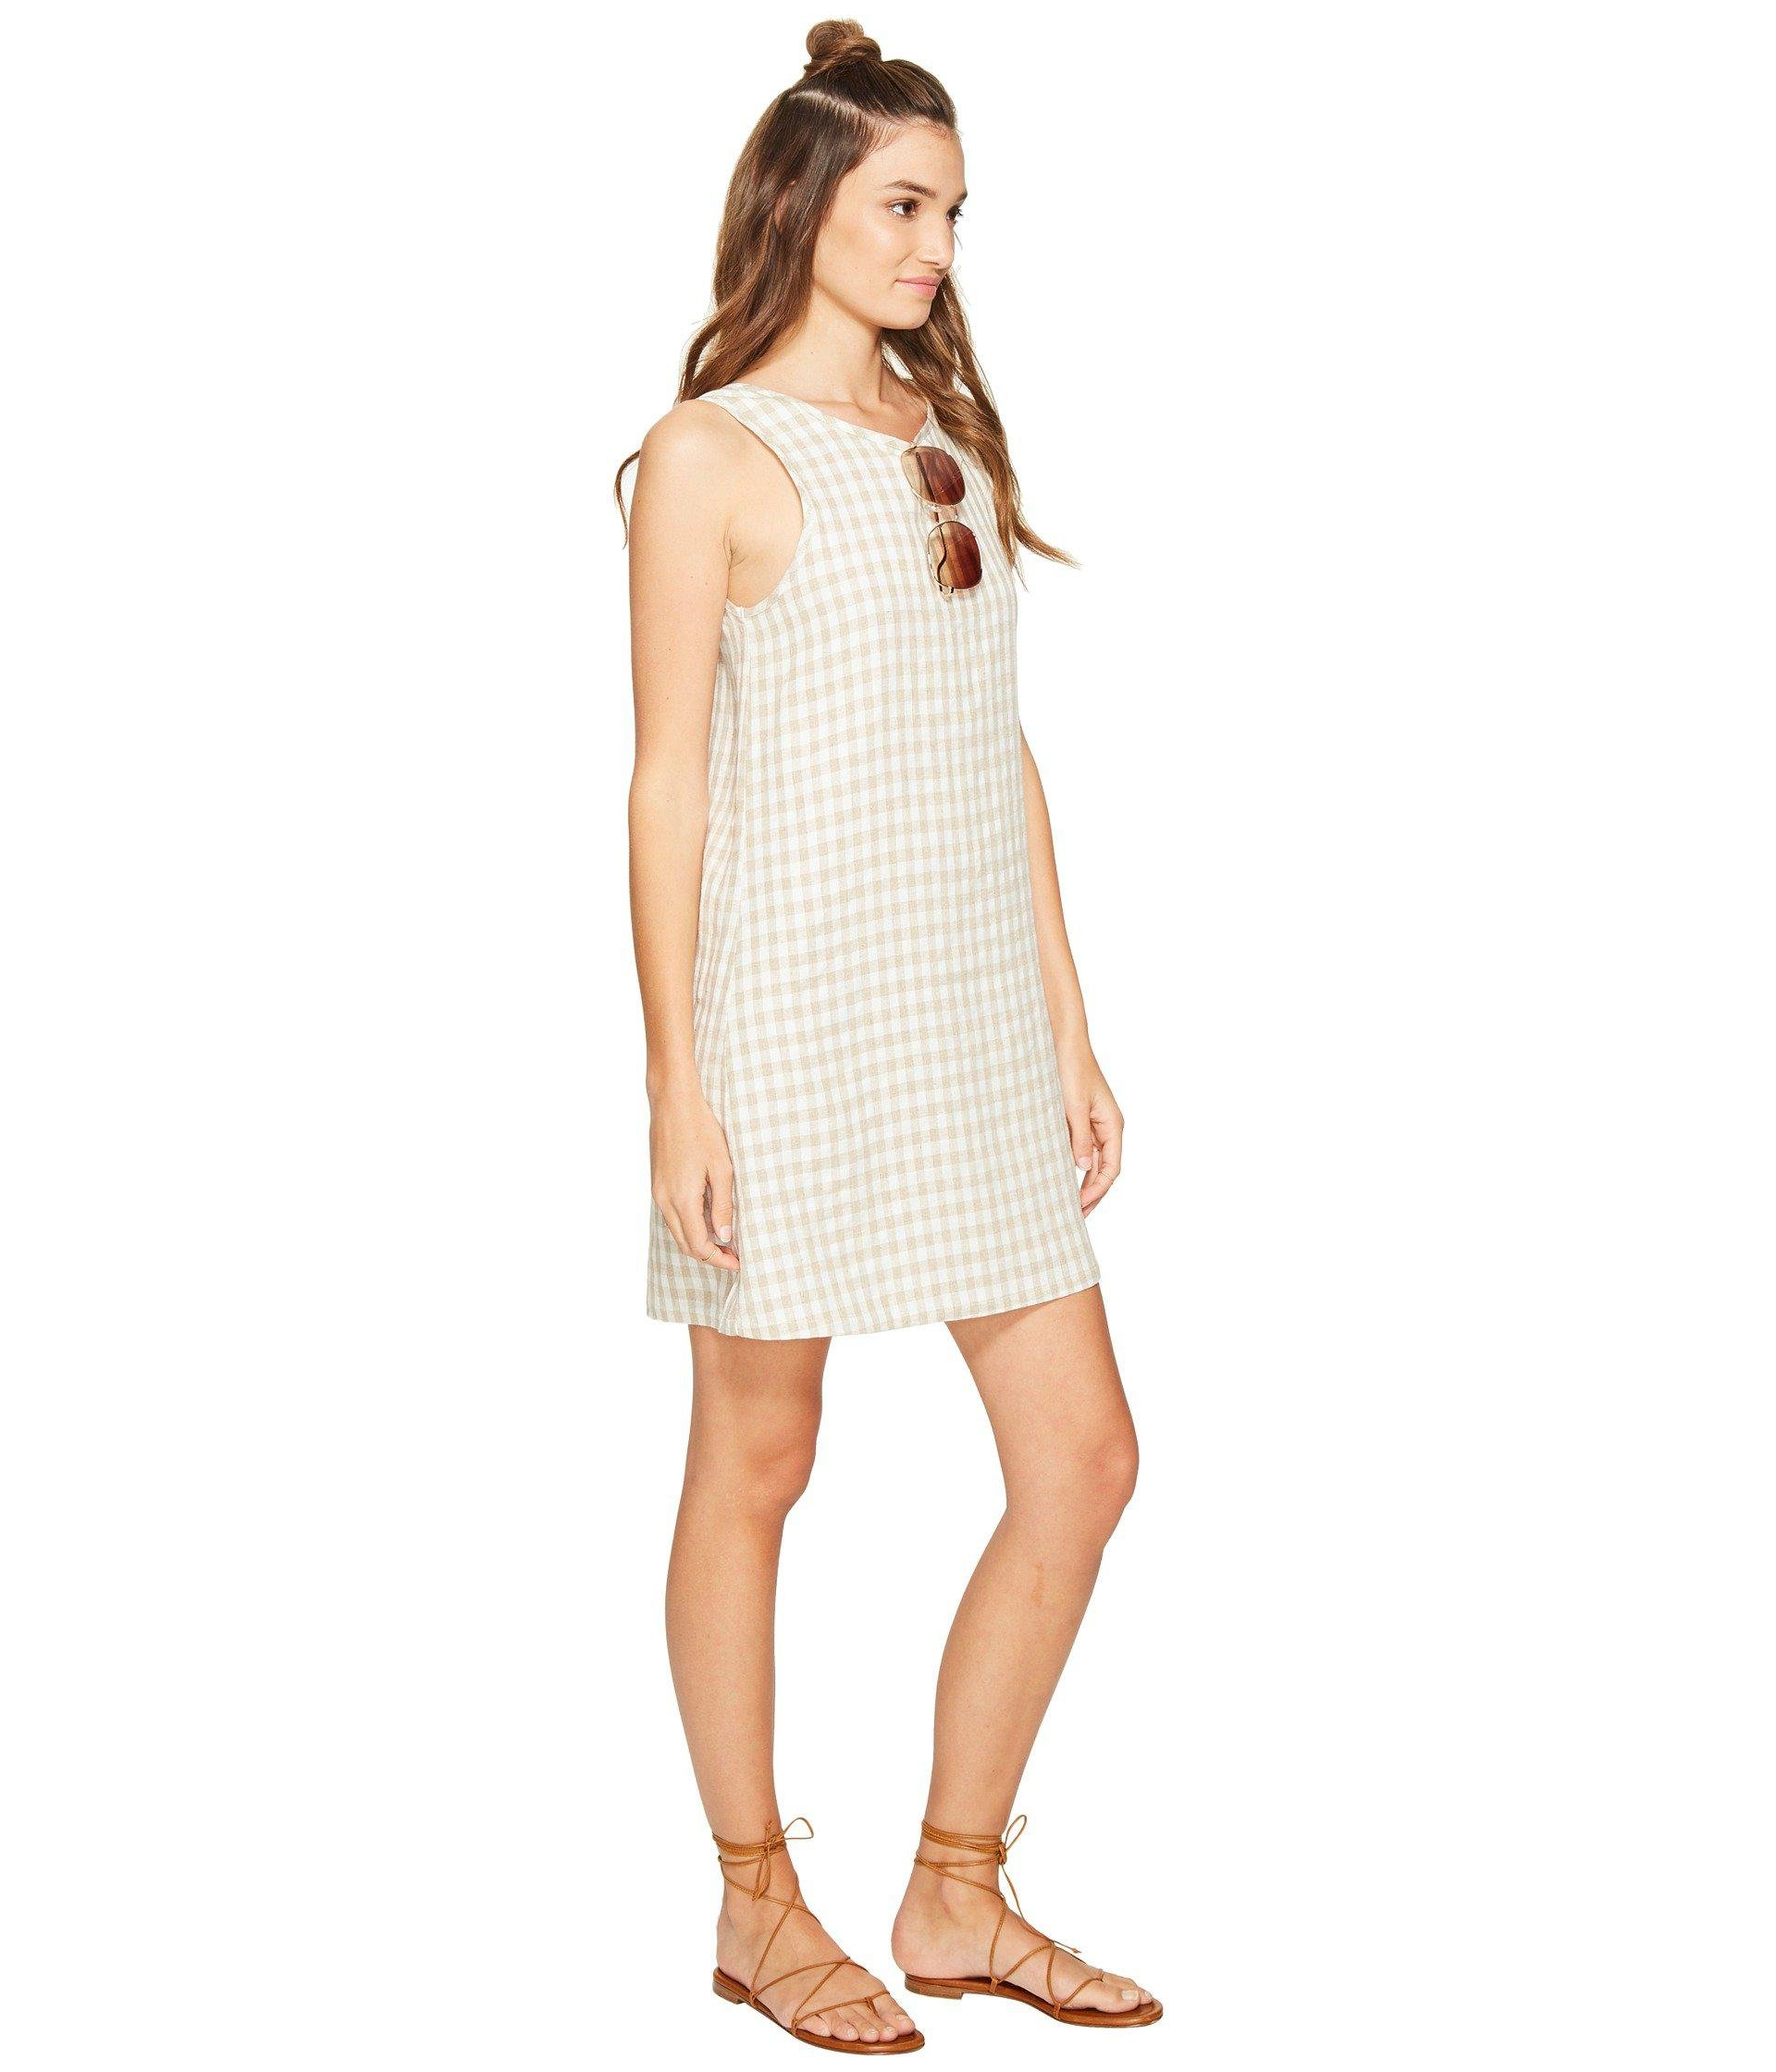 Olympia Dress in White Clayton Clearance Discount Sale Outlet Store Buy Cheap Websites Limited Edition Cheap Price Wholesale Price Online XBq54A8